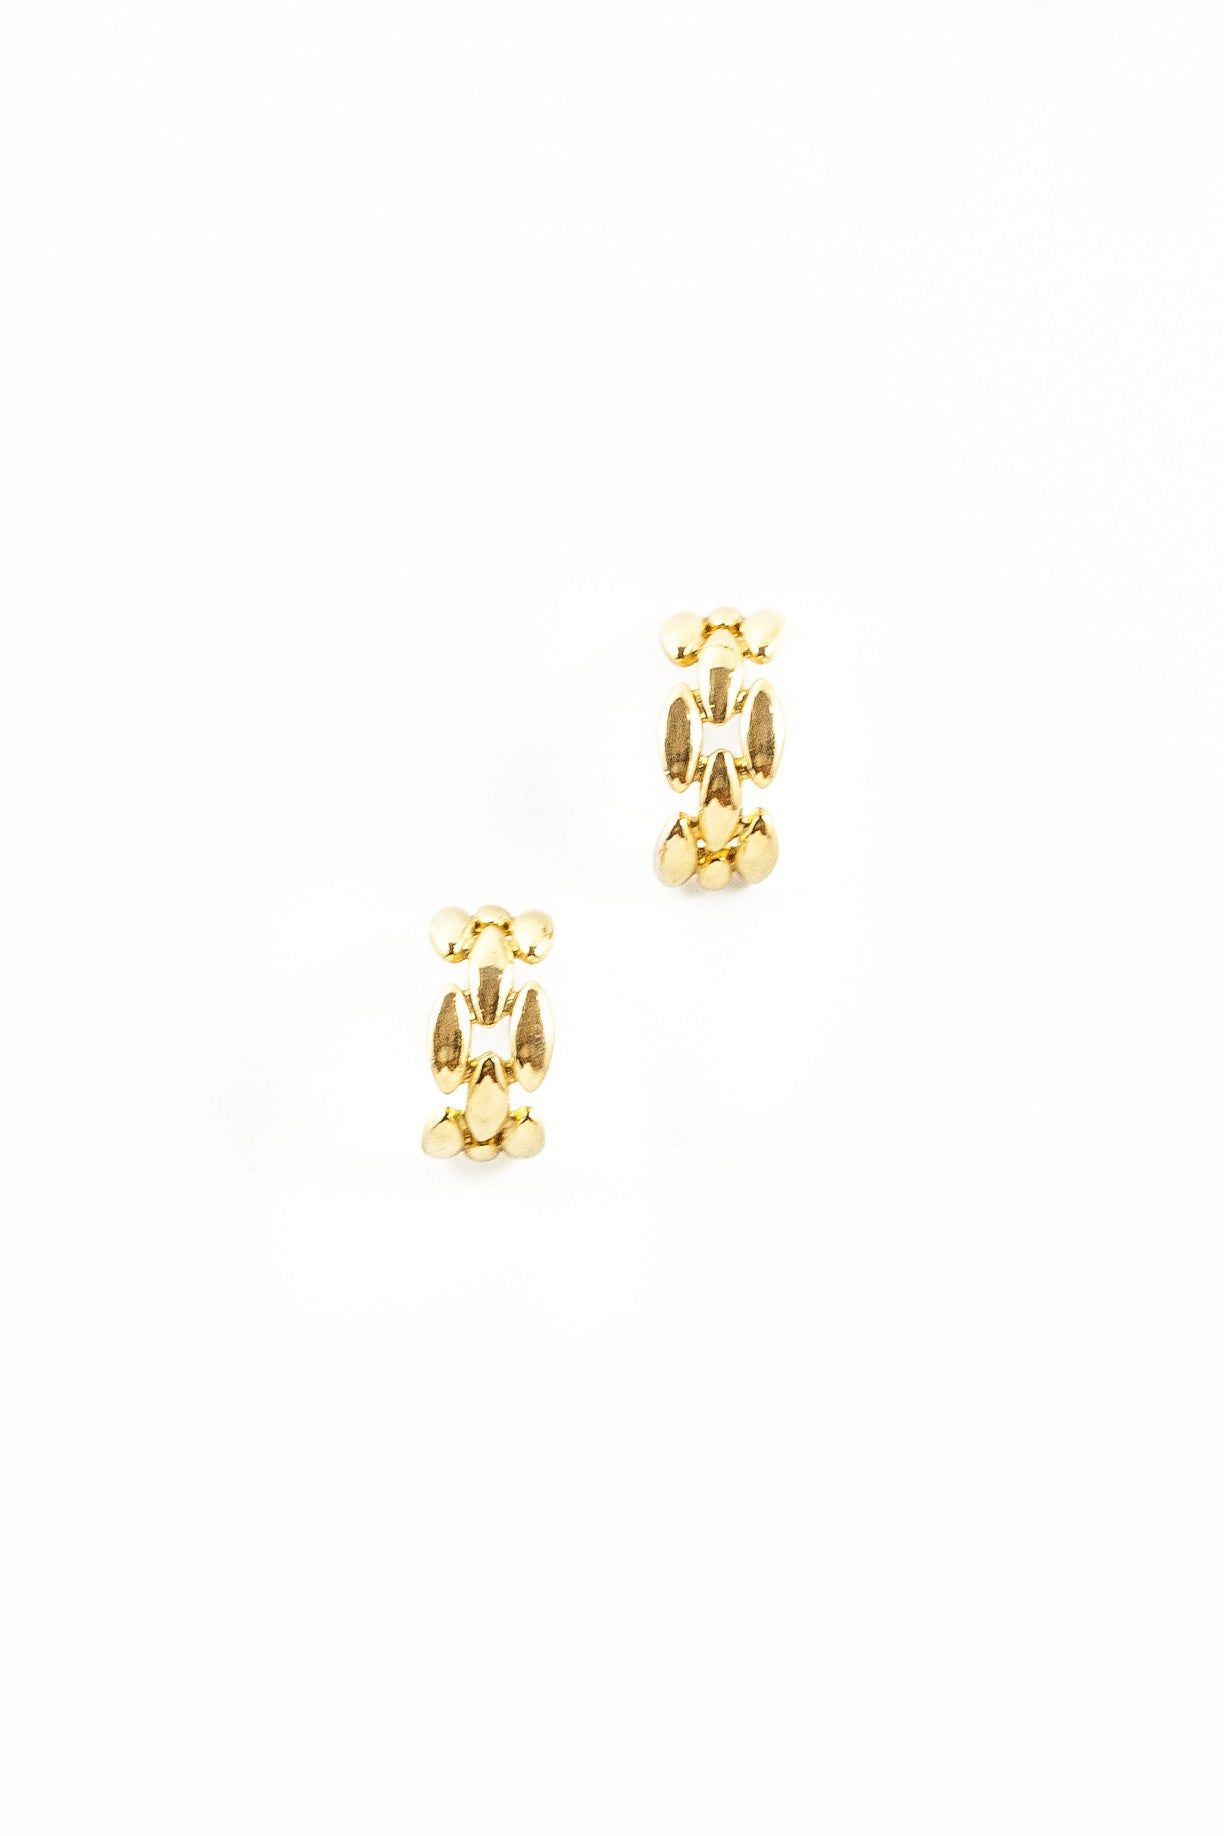 80's__Givenchy__Chunky Chain Hoop Earrings